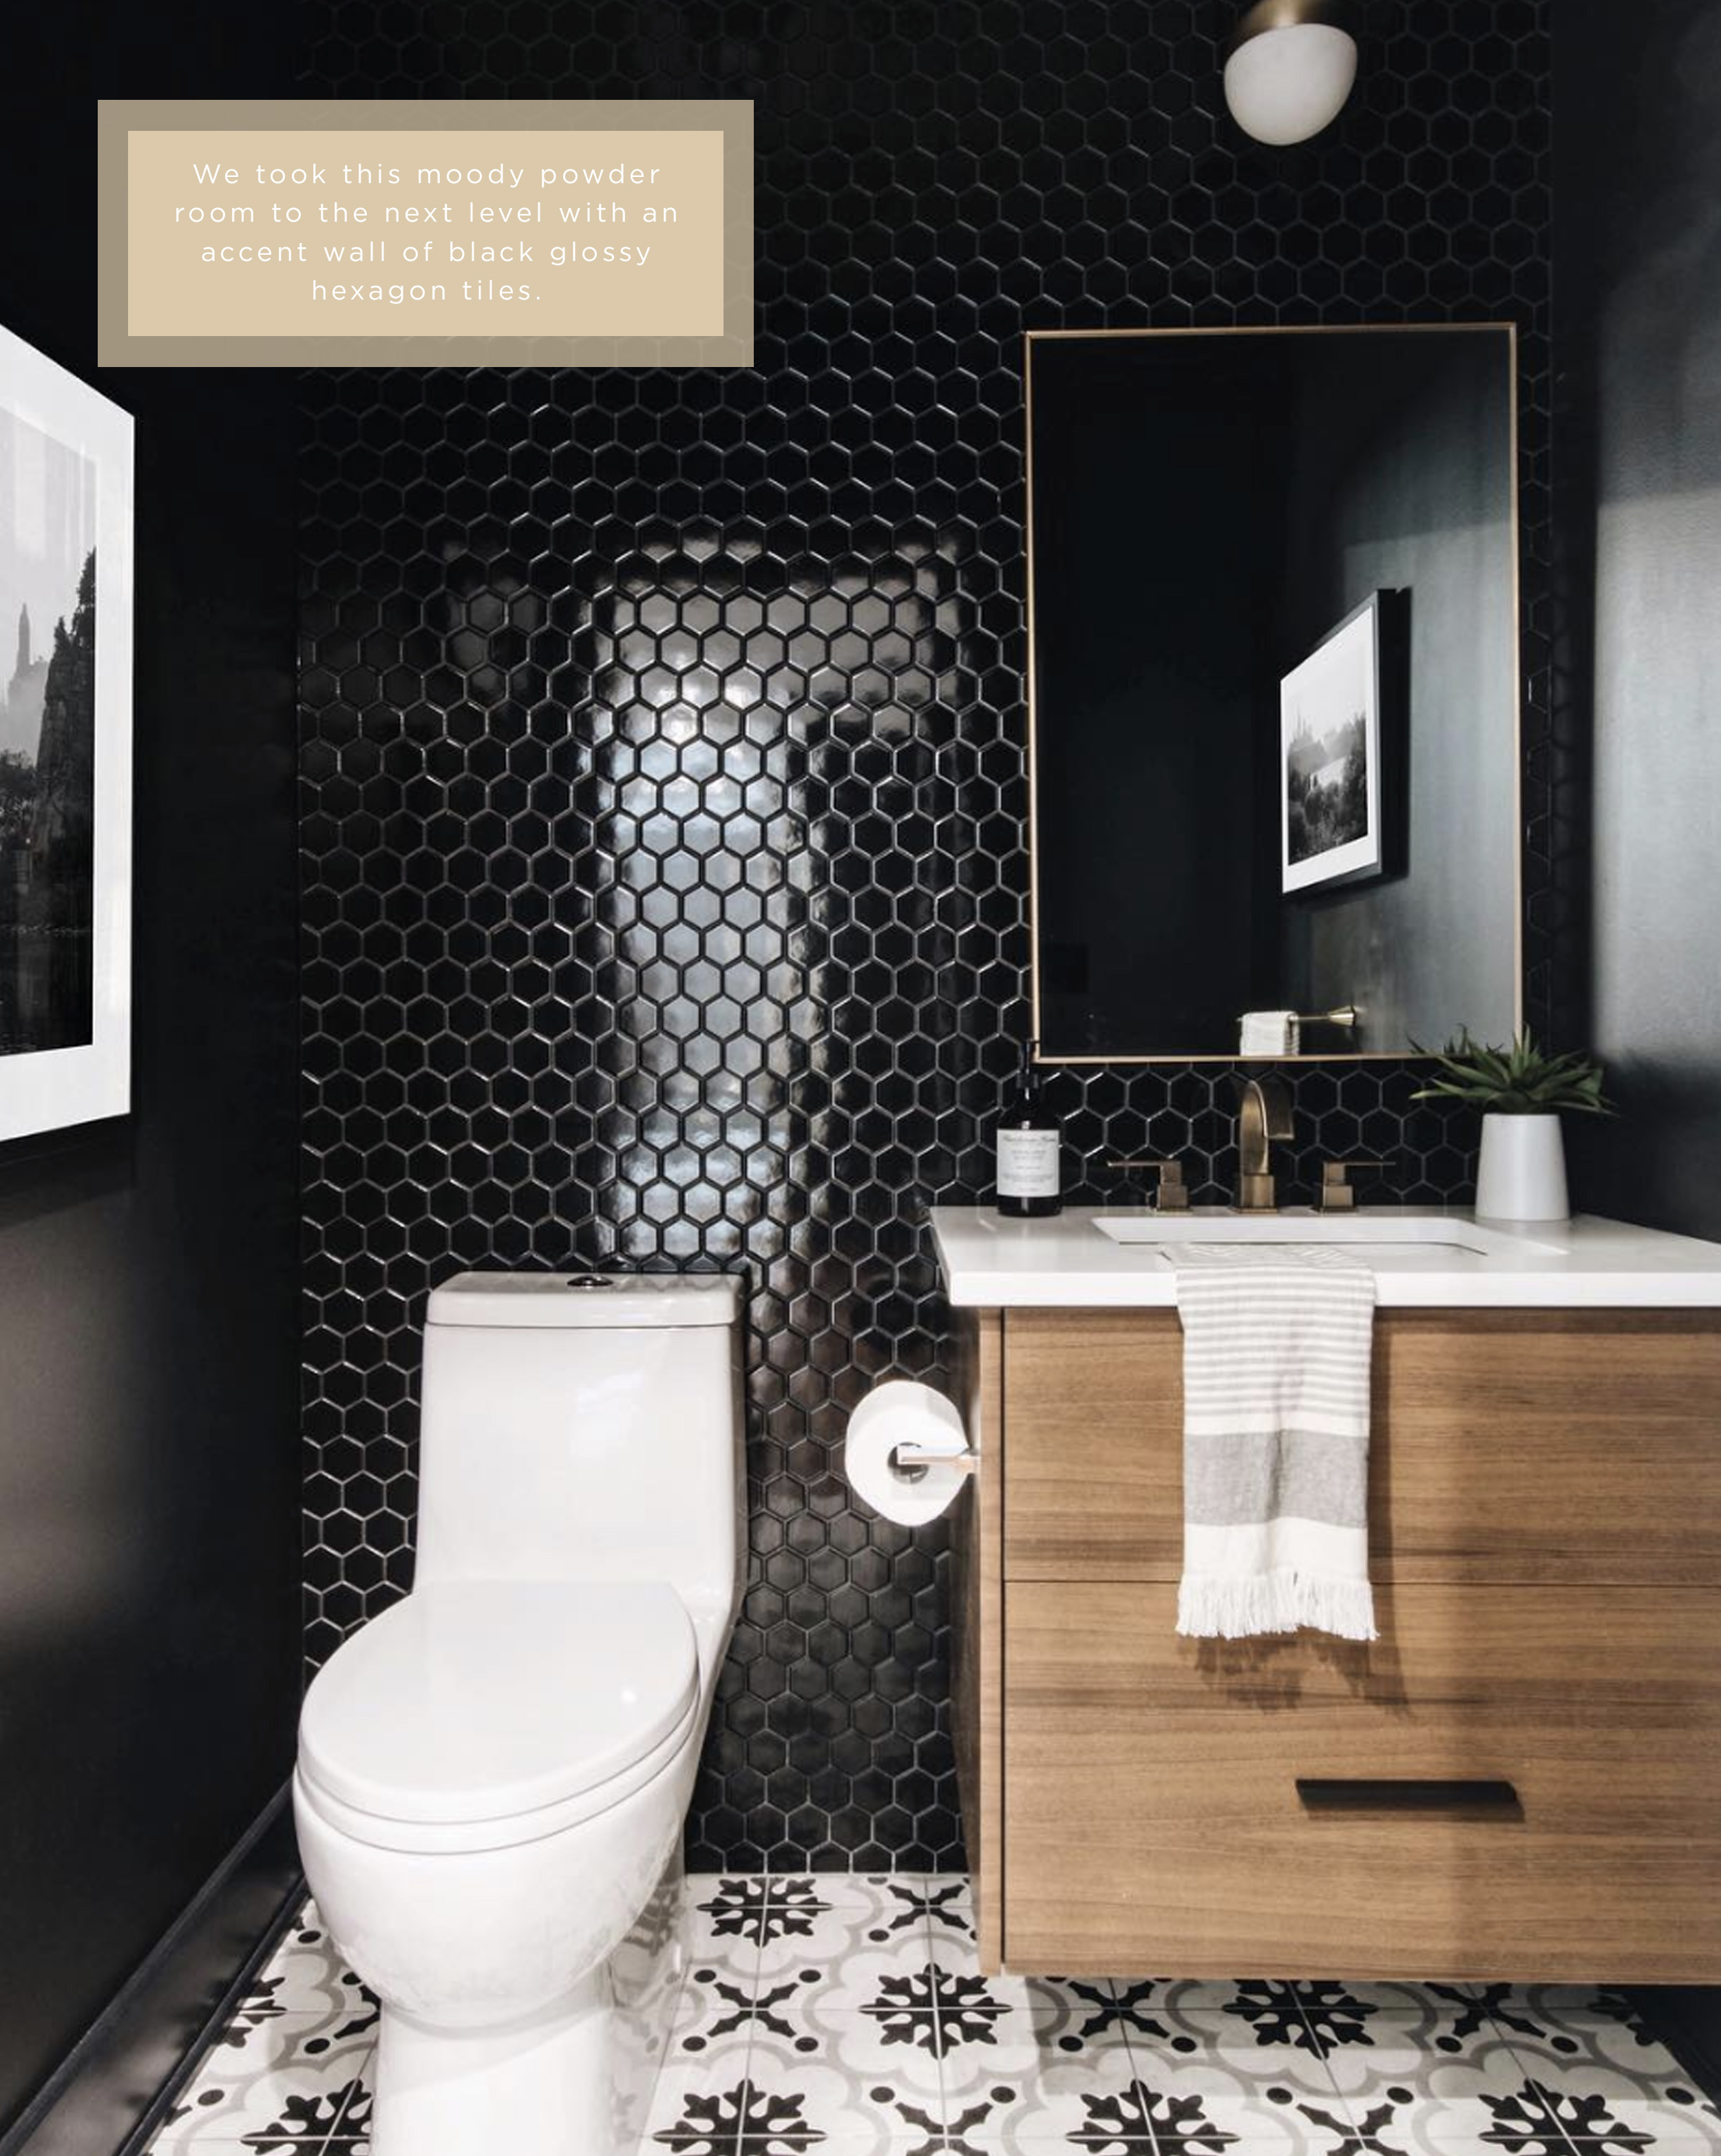 Statement powder room with accent wall of glossy black hexagon tiles by Ottawa Interior Design Firm Leclair Decor